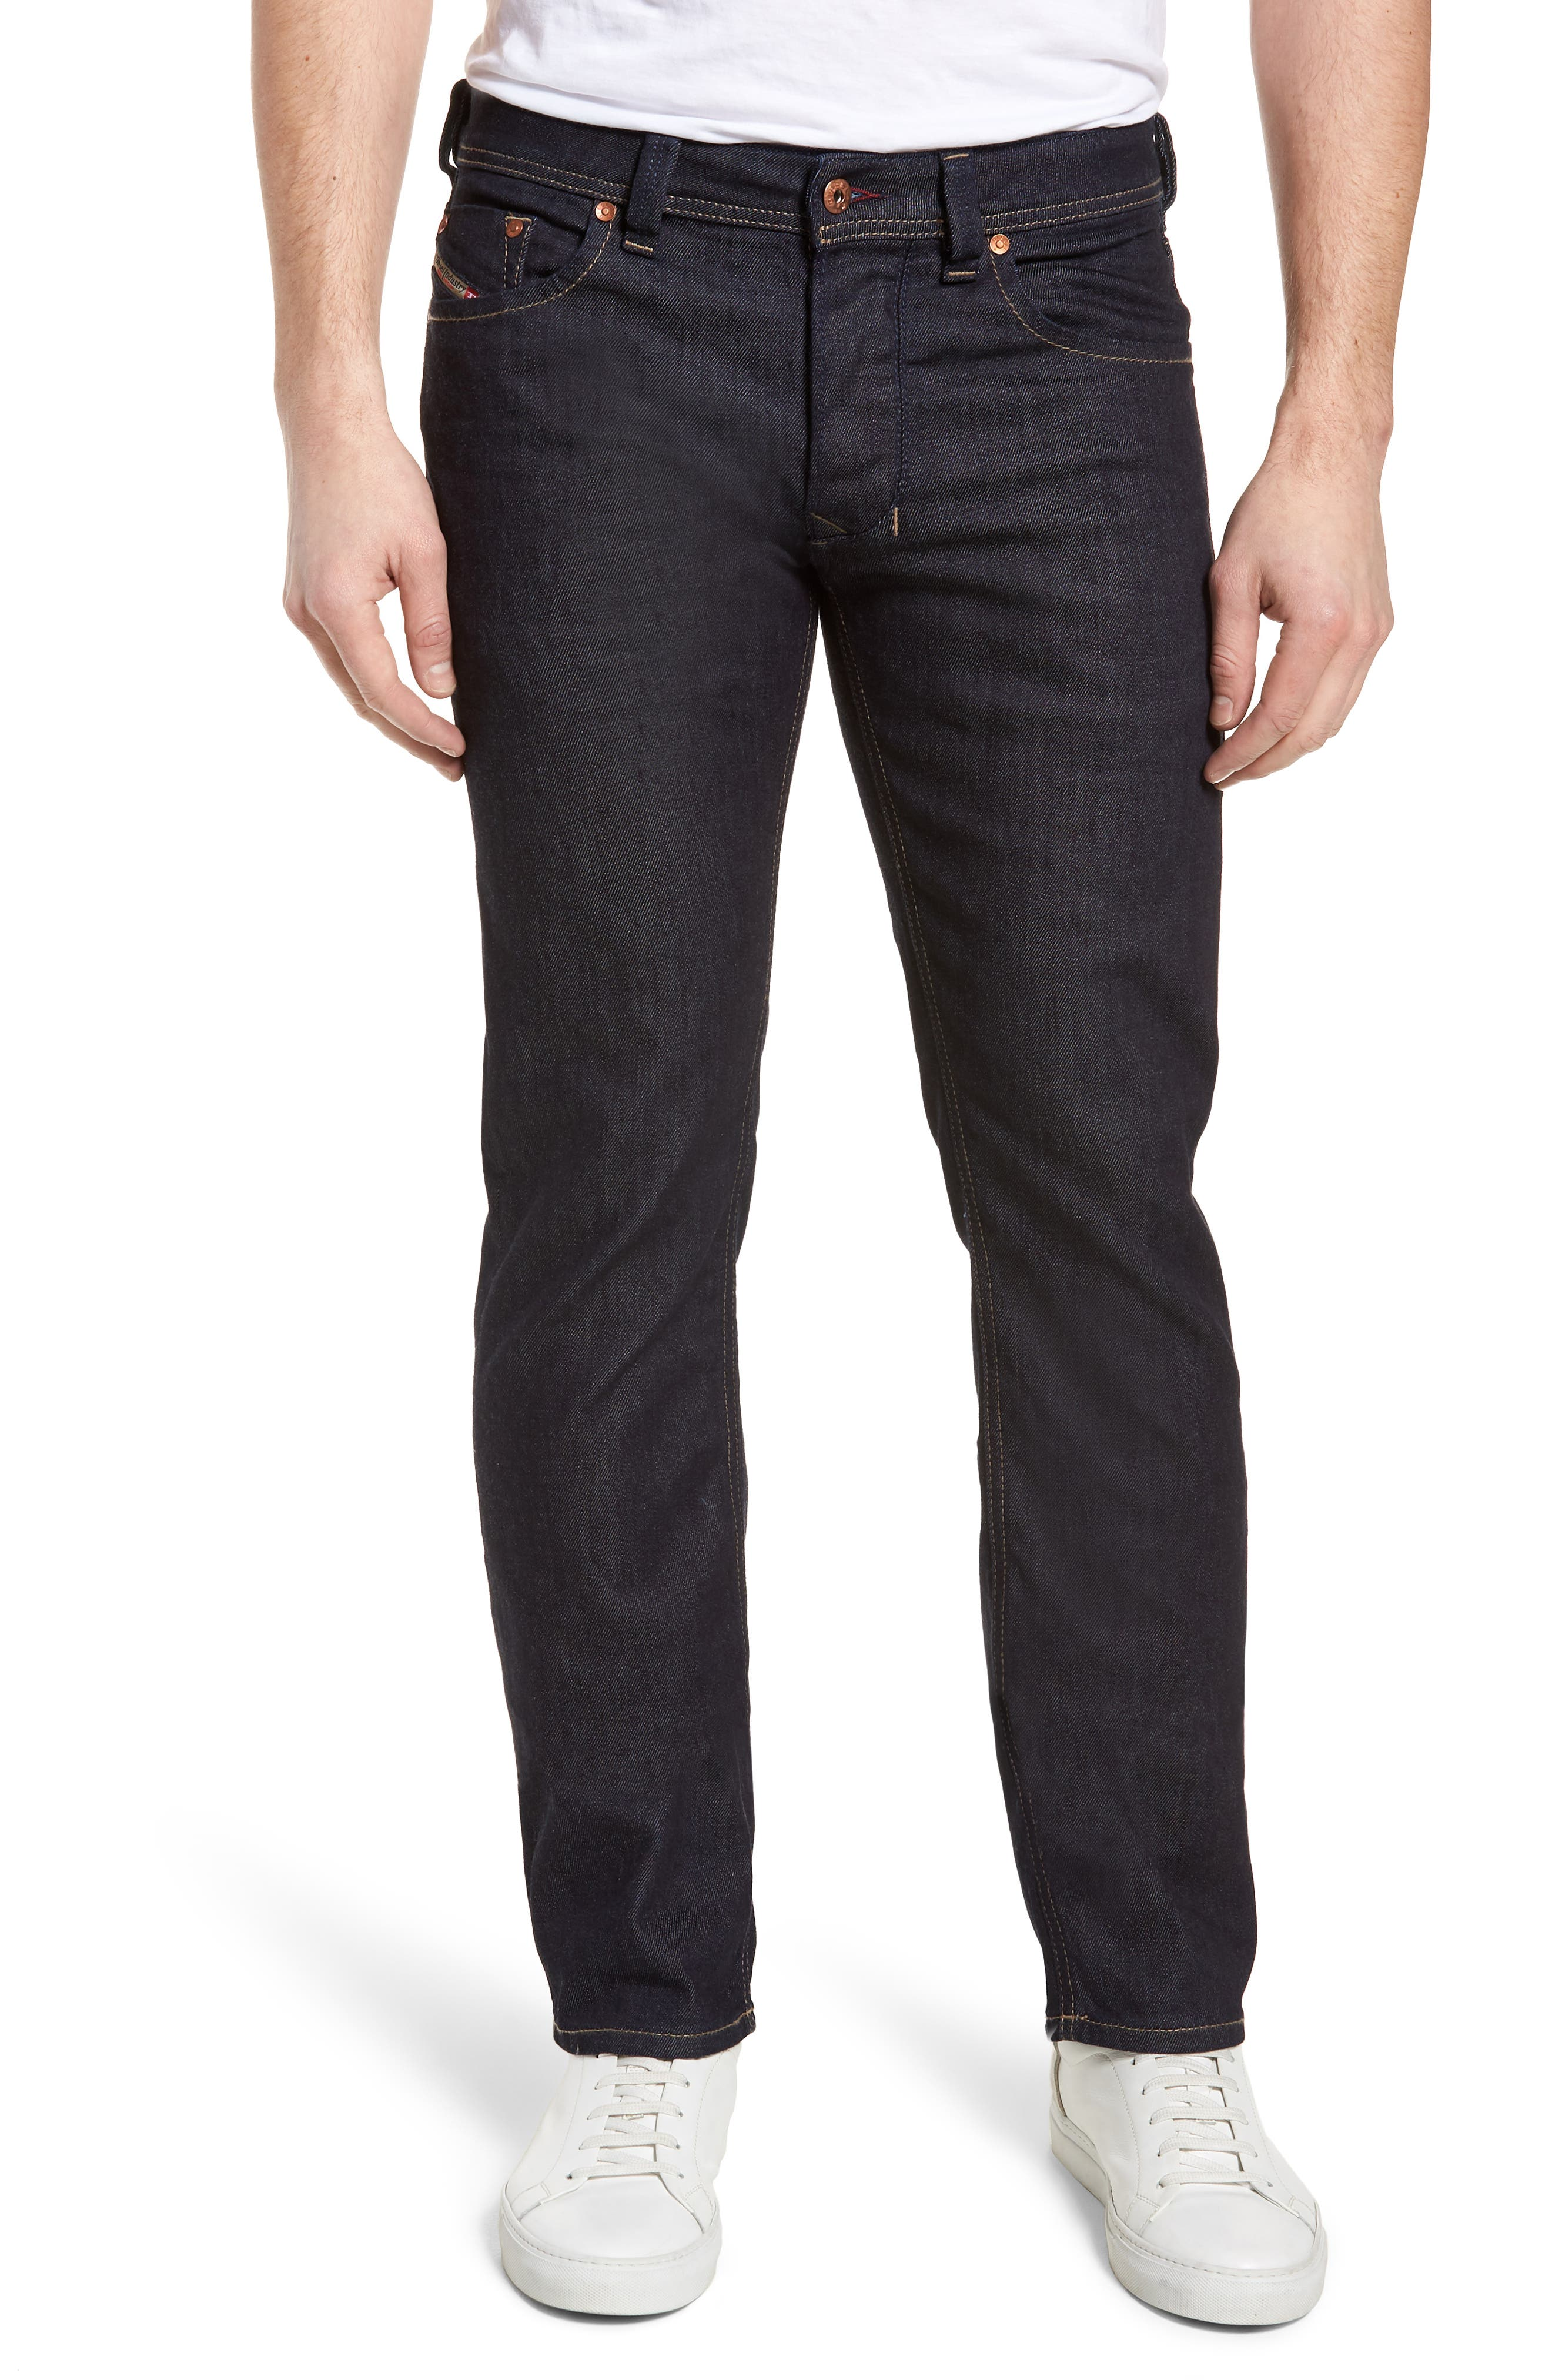 Larkee Relaxed Fit Jeans,                         Main,                         color, Blue